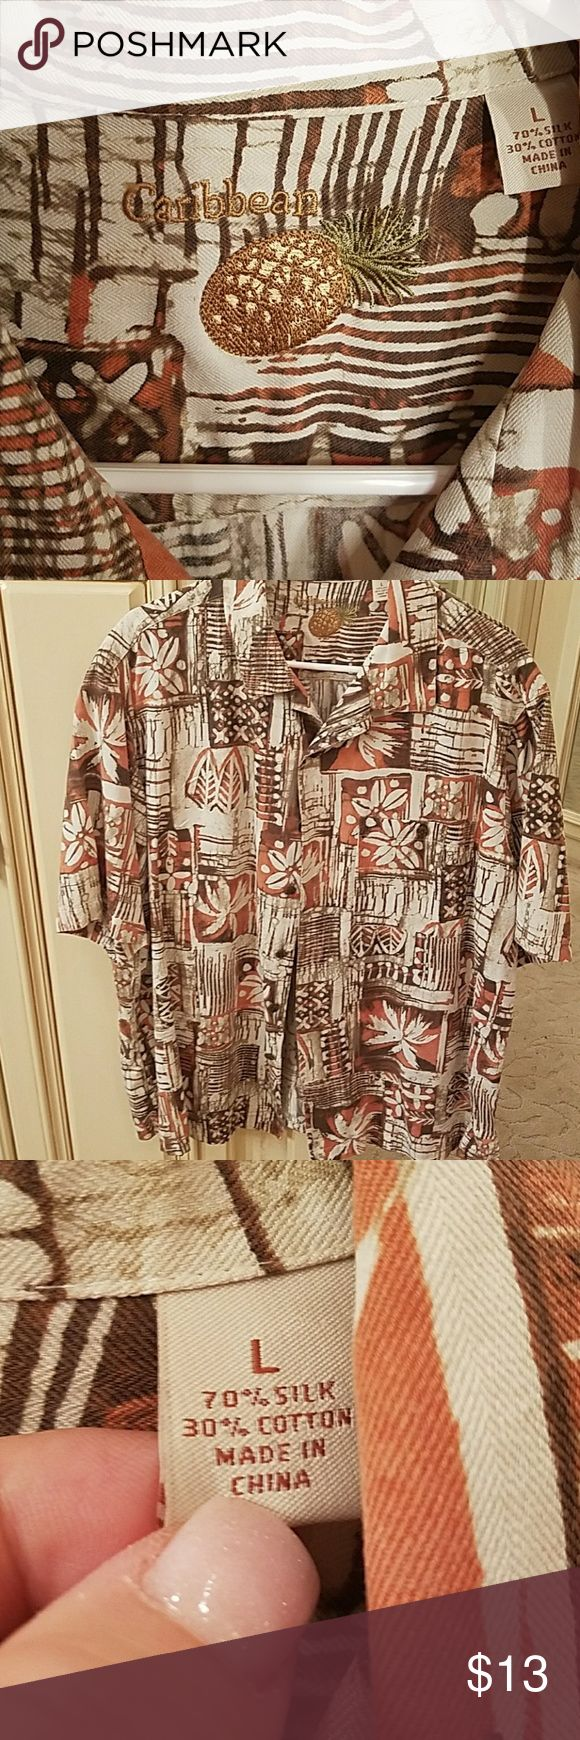 Men's short sleeve tropical button down Men's short sleeve button down is 70% silk. Very soft and super comfy! No stains. Good condition Caribbean Shirts Casual Button Down Shirts